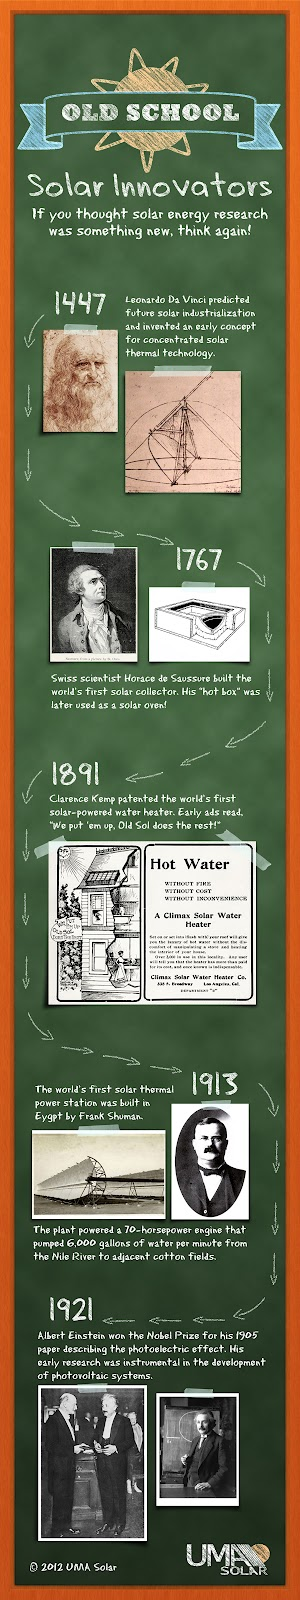 Solar energy innovations through history.